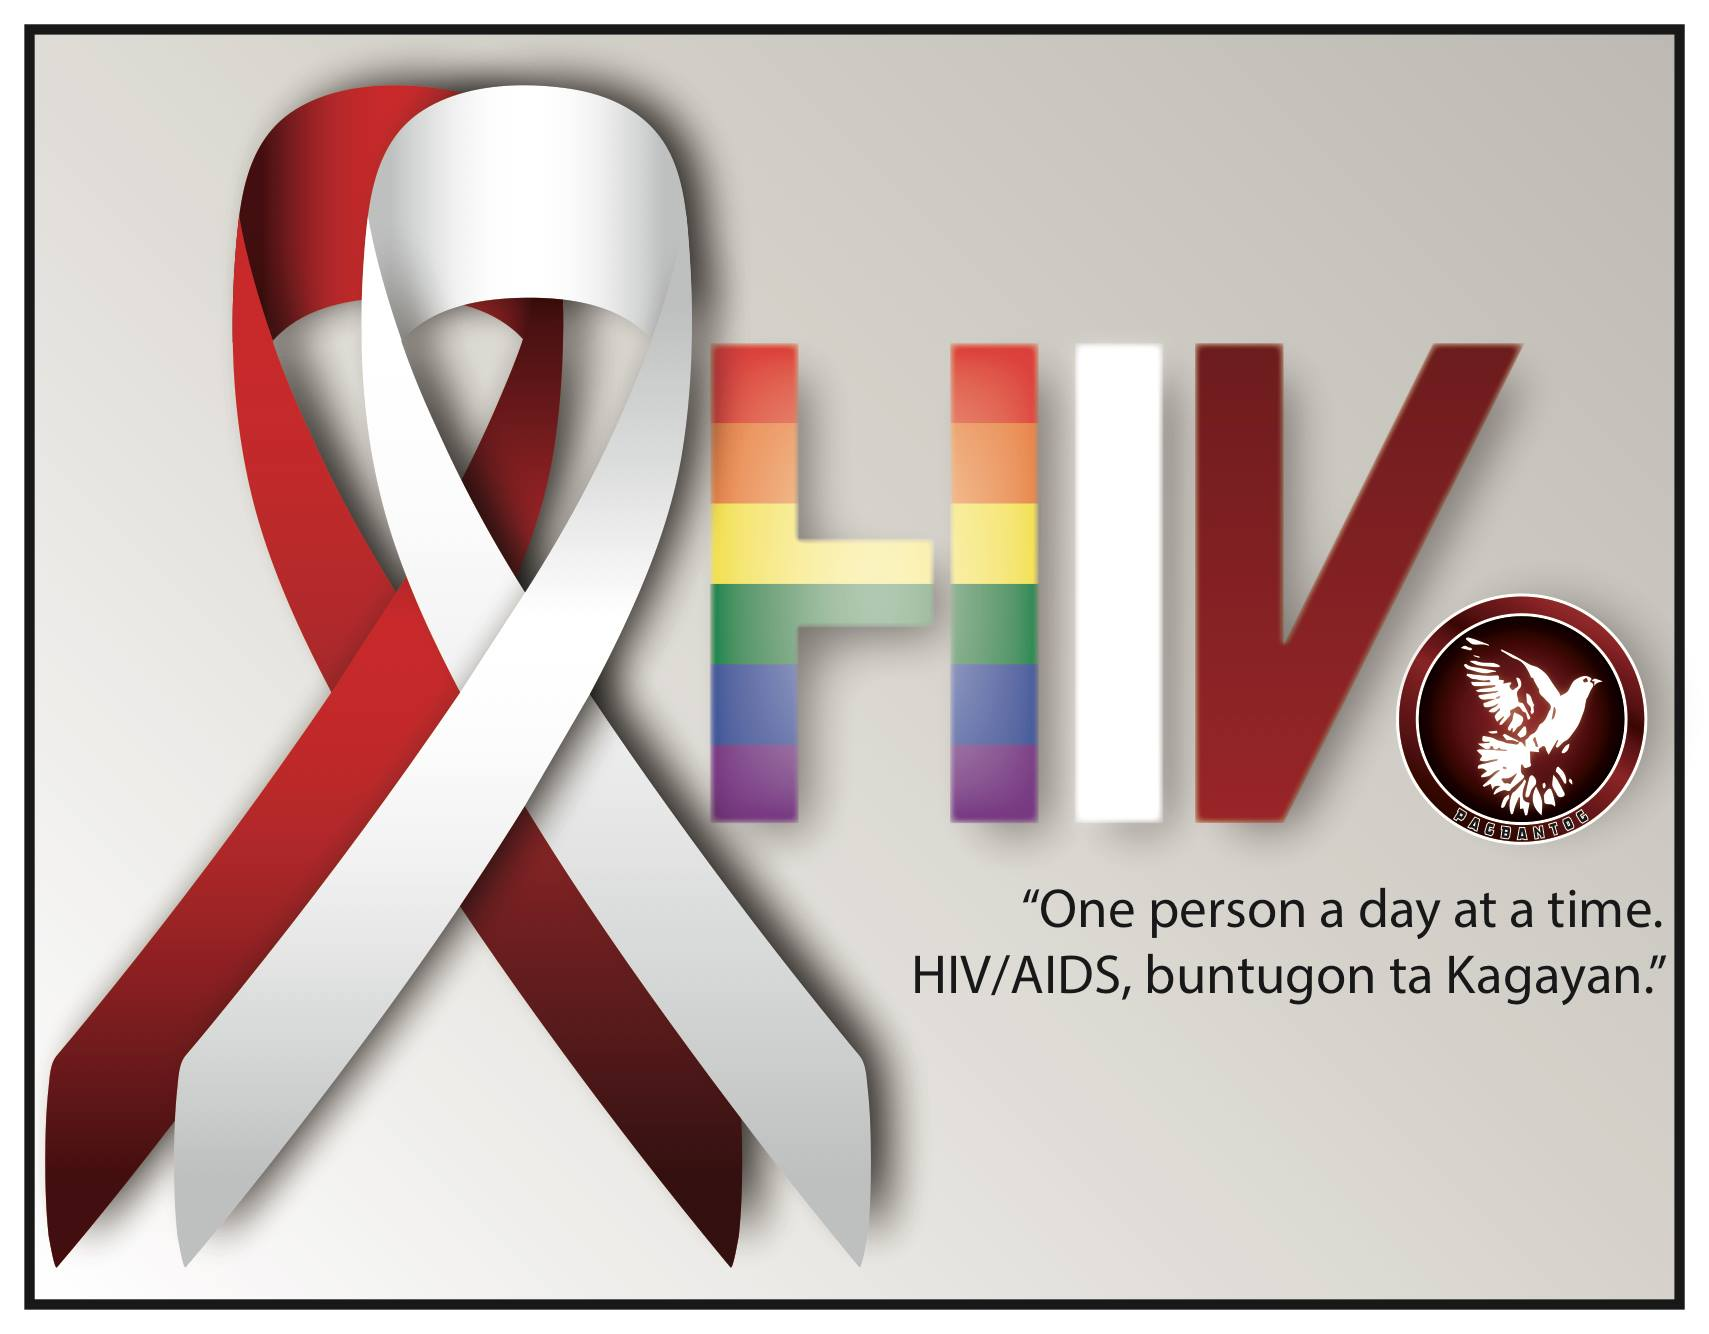 2,143 test positive for HIV in 6 months